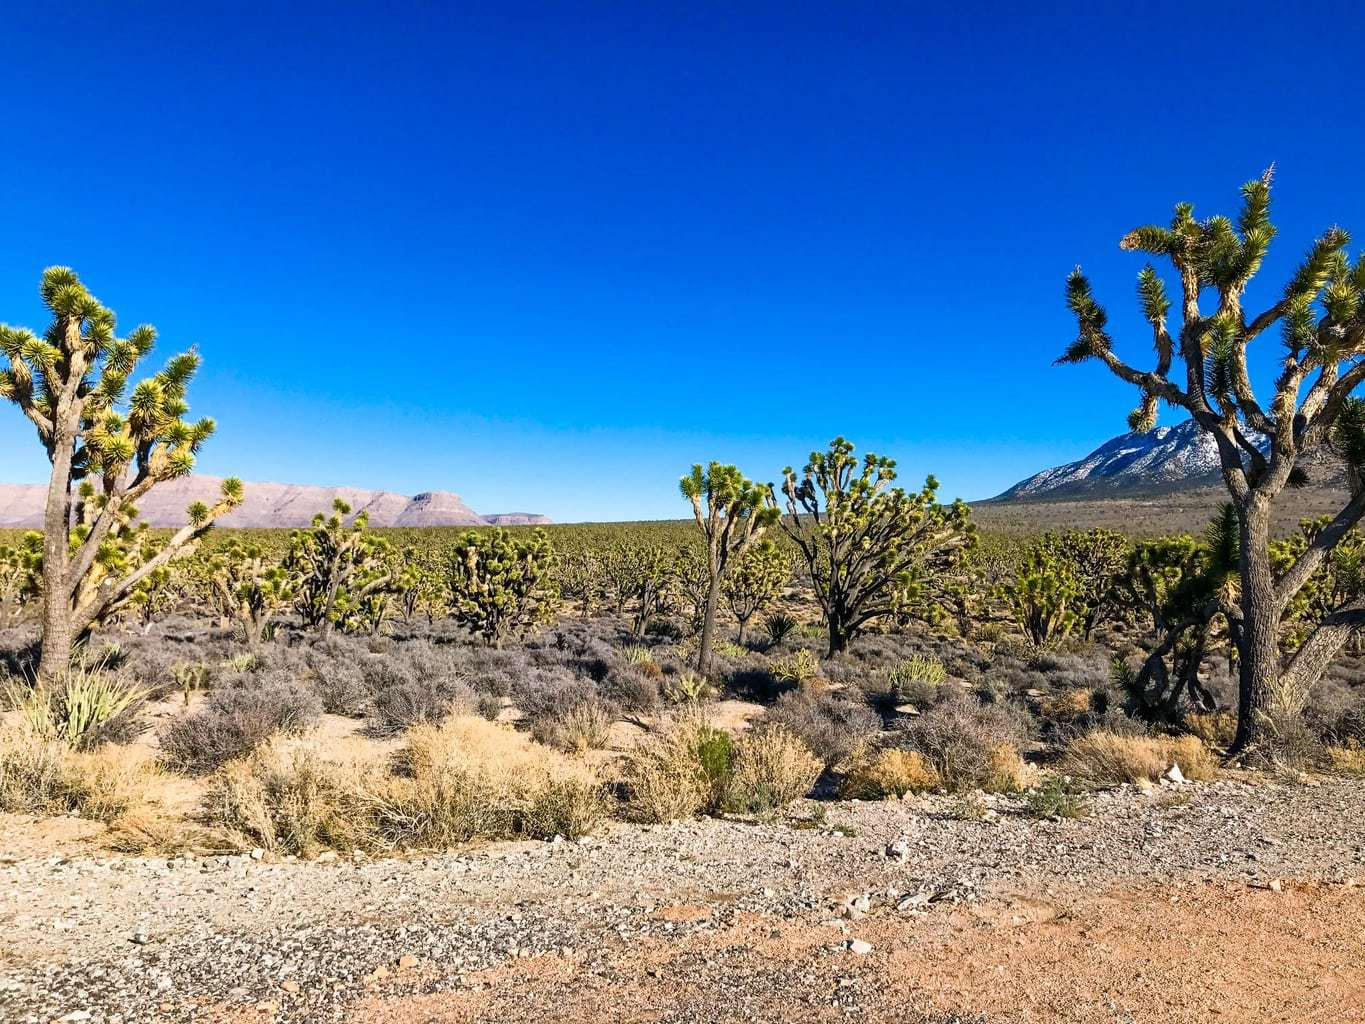 Joshua Trees in Arizona, Family Fun Vacation